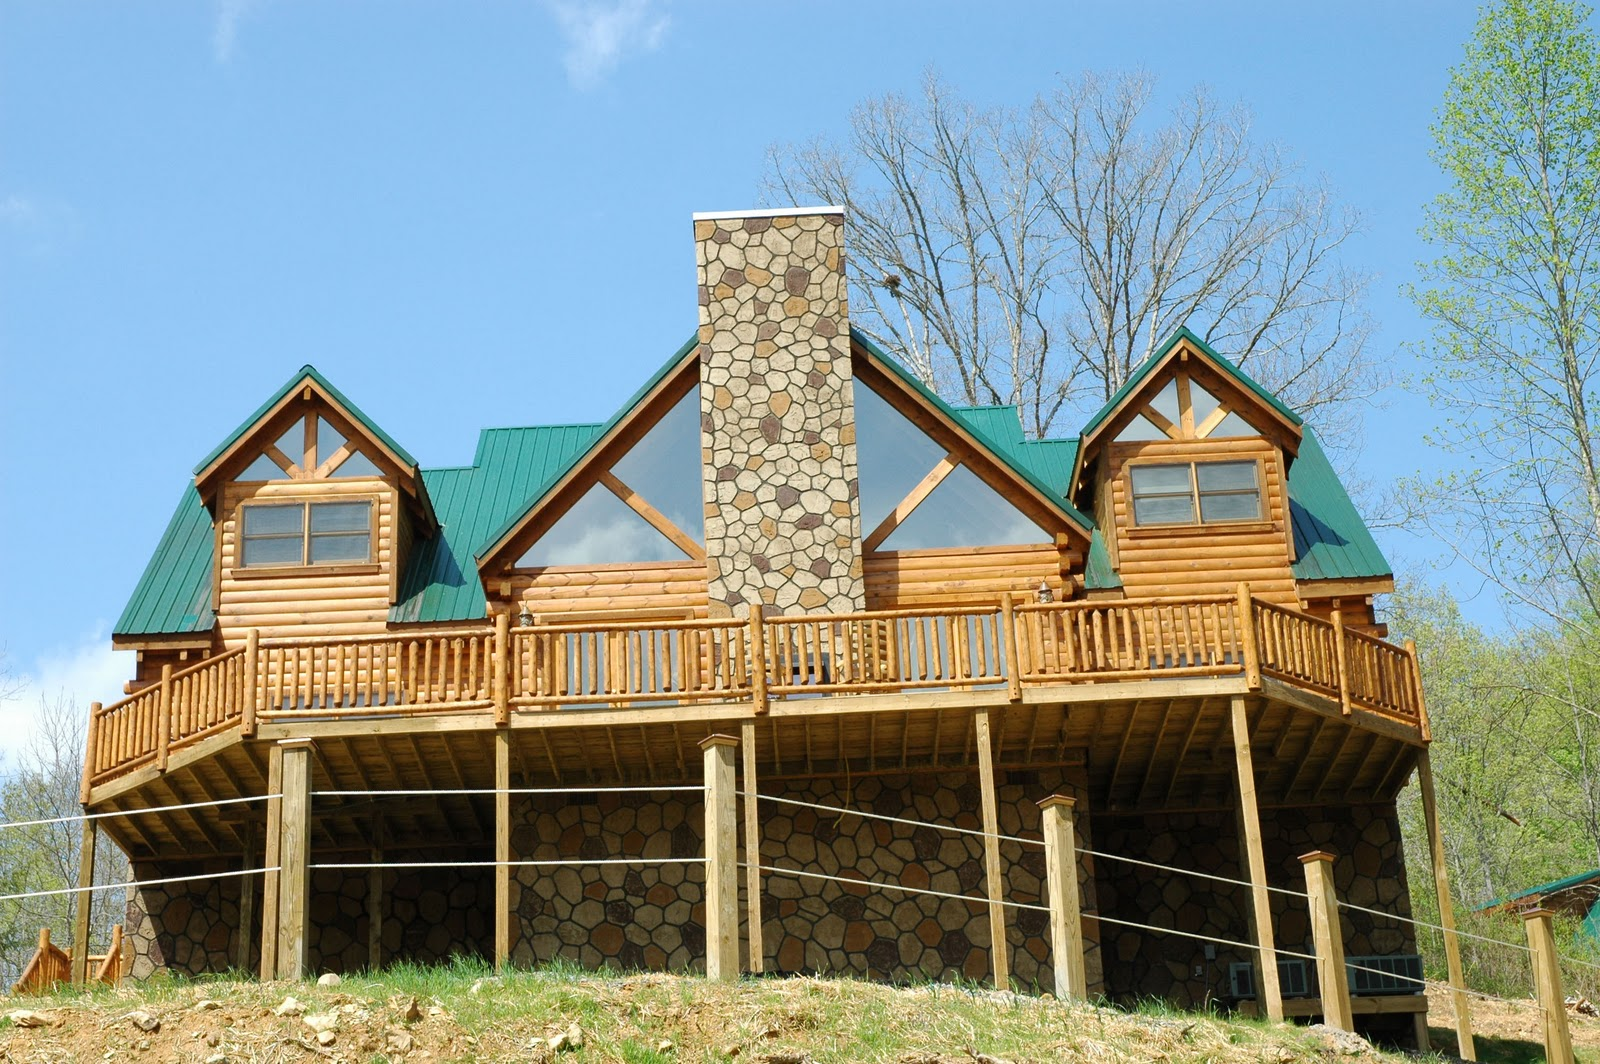 cabin of in a getaway blog tips mountain view cabins most secluded our smoky luxury weekend gatlinburg from the for at making